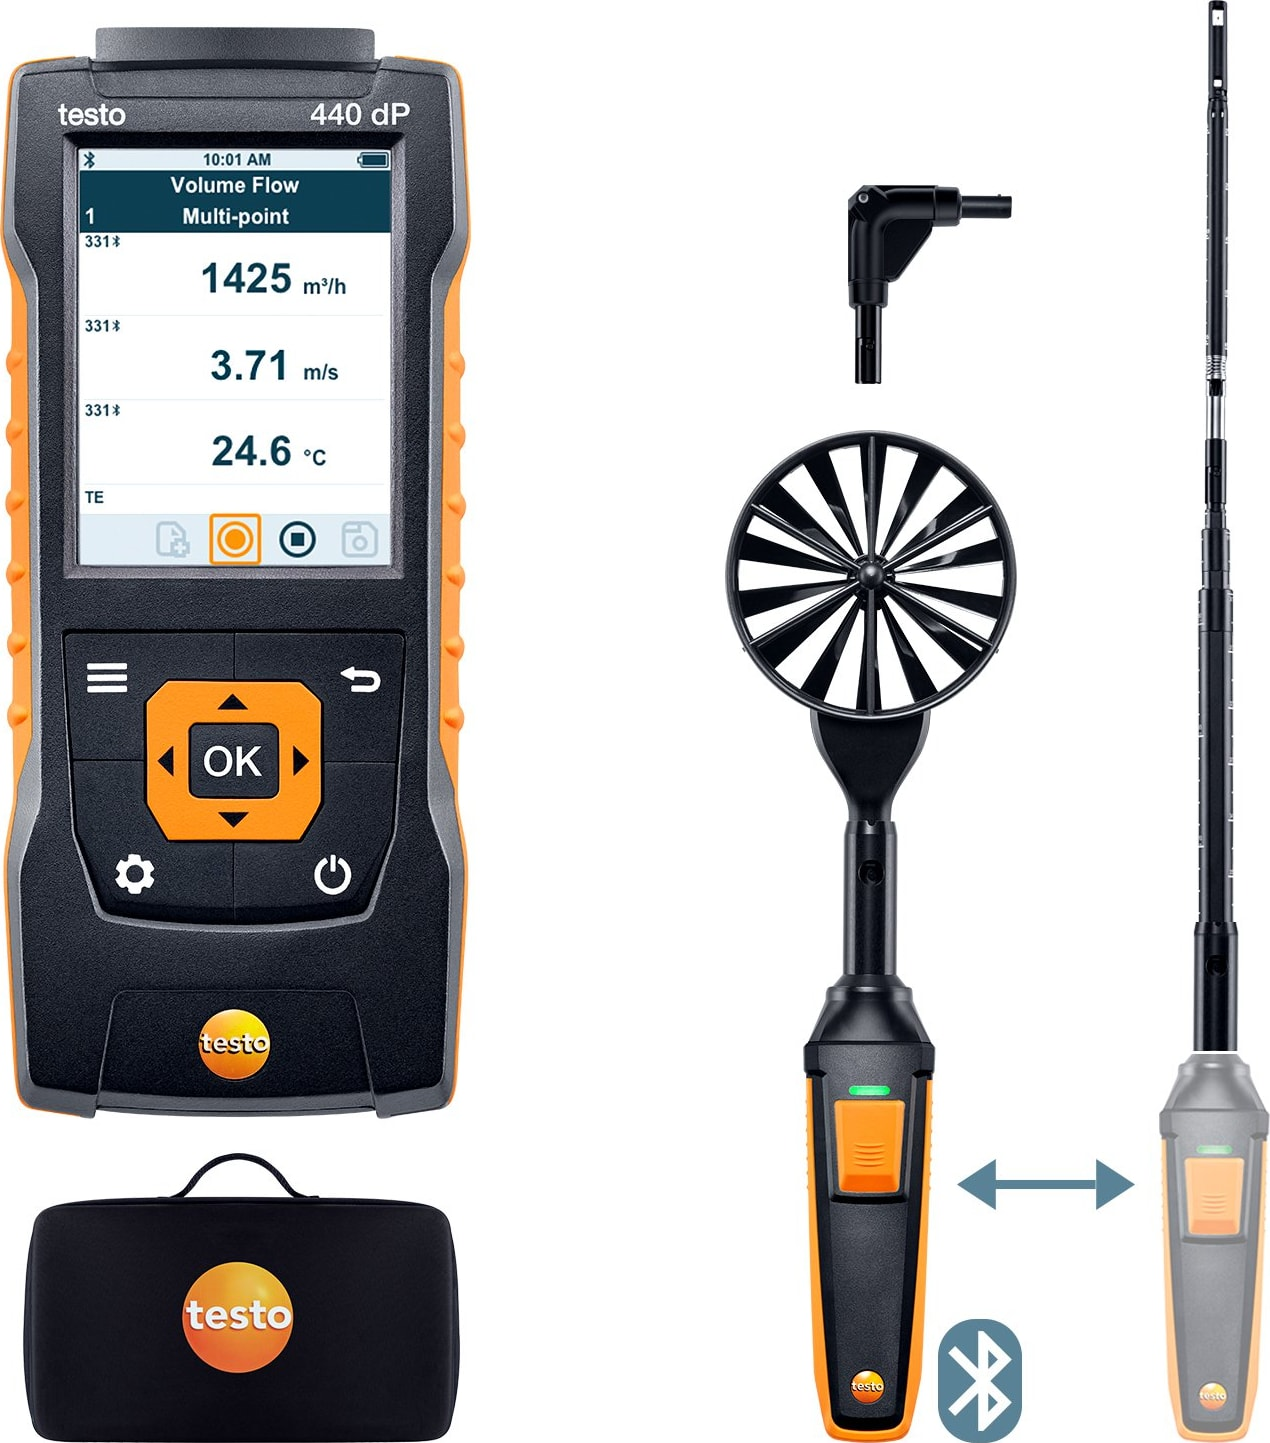 Testo 440 dP - Airflow ComboKit 1 with Bluetooth and Delta P, Part Number 0563 4409